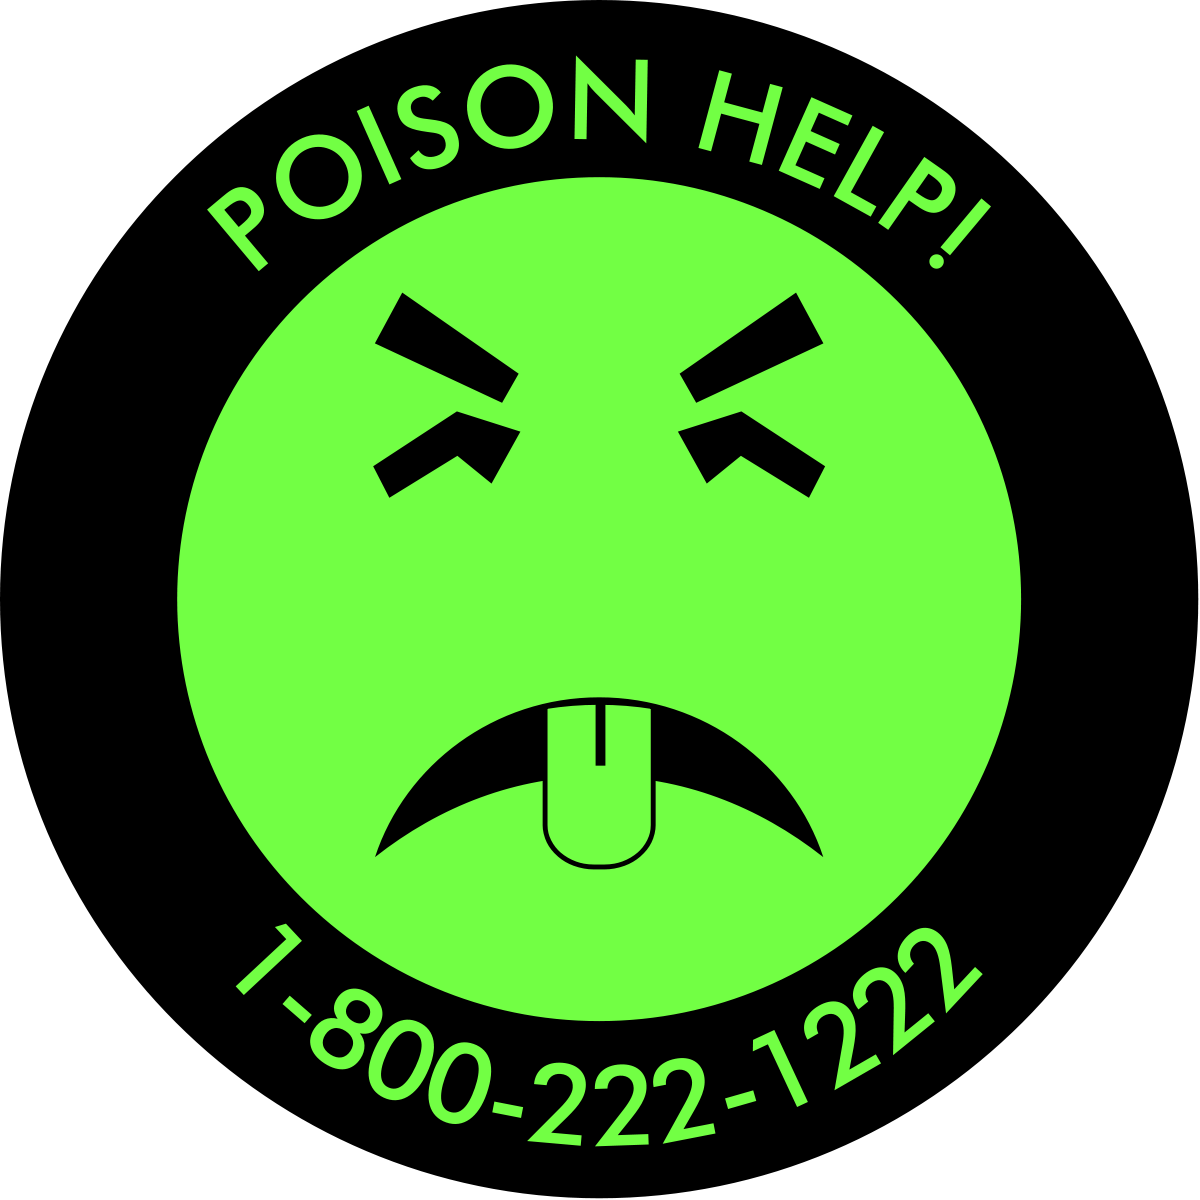 Apple clipart poison image black and white Pictures Of Poison (79+) Desktop Backgrounds image black and white